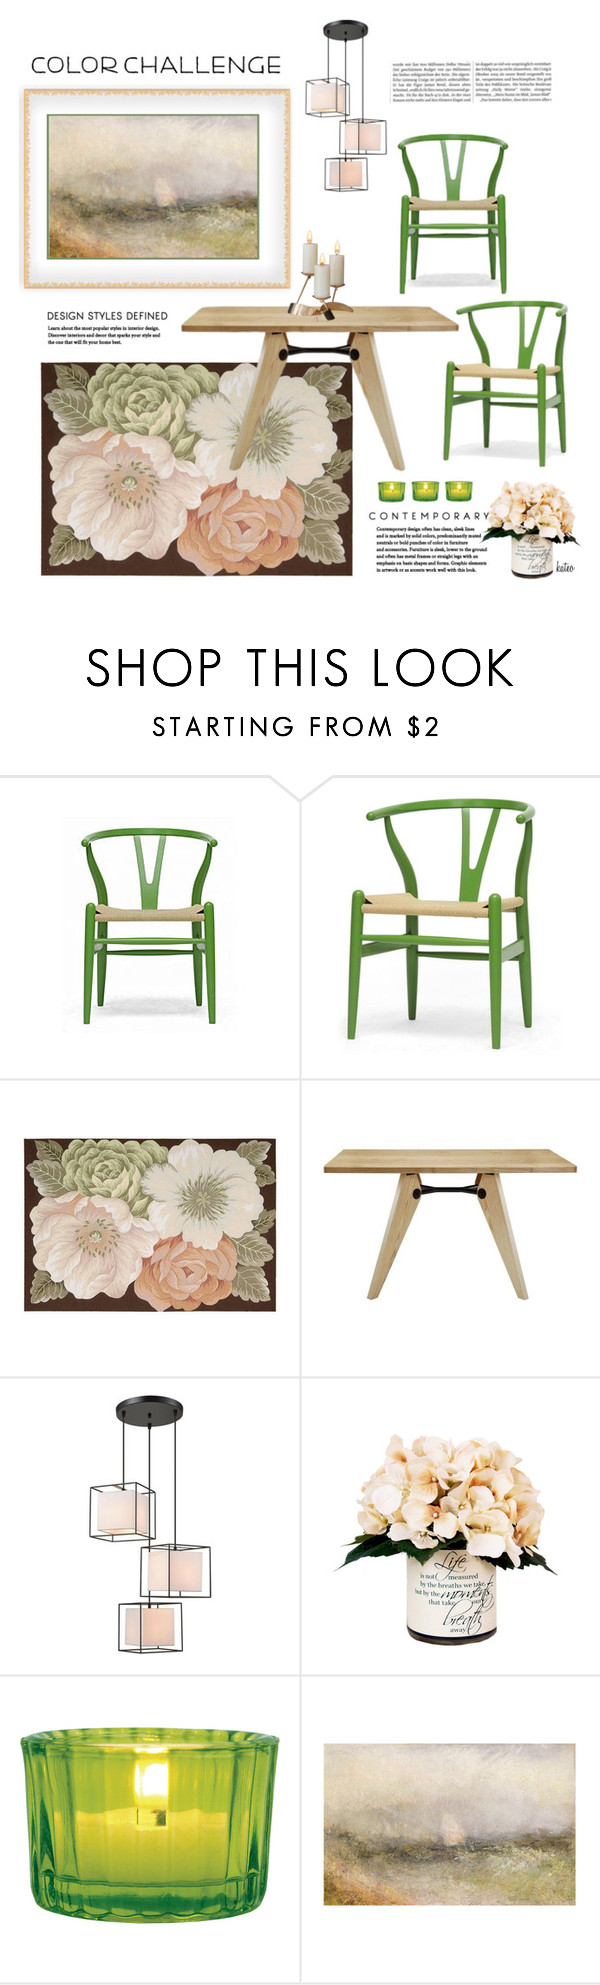 """""""Green & Blush Dining Room"""" by kateo ❤ liked on Polyvore featuring interior, interiors, interior design, home, home decor, interior decorating, Baxton Studio, Dimond, Creative Displays and Cultural Intrigue"""